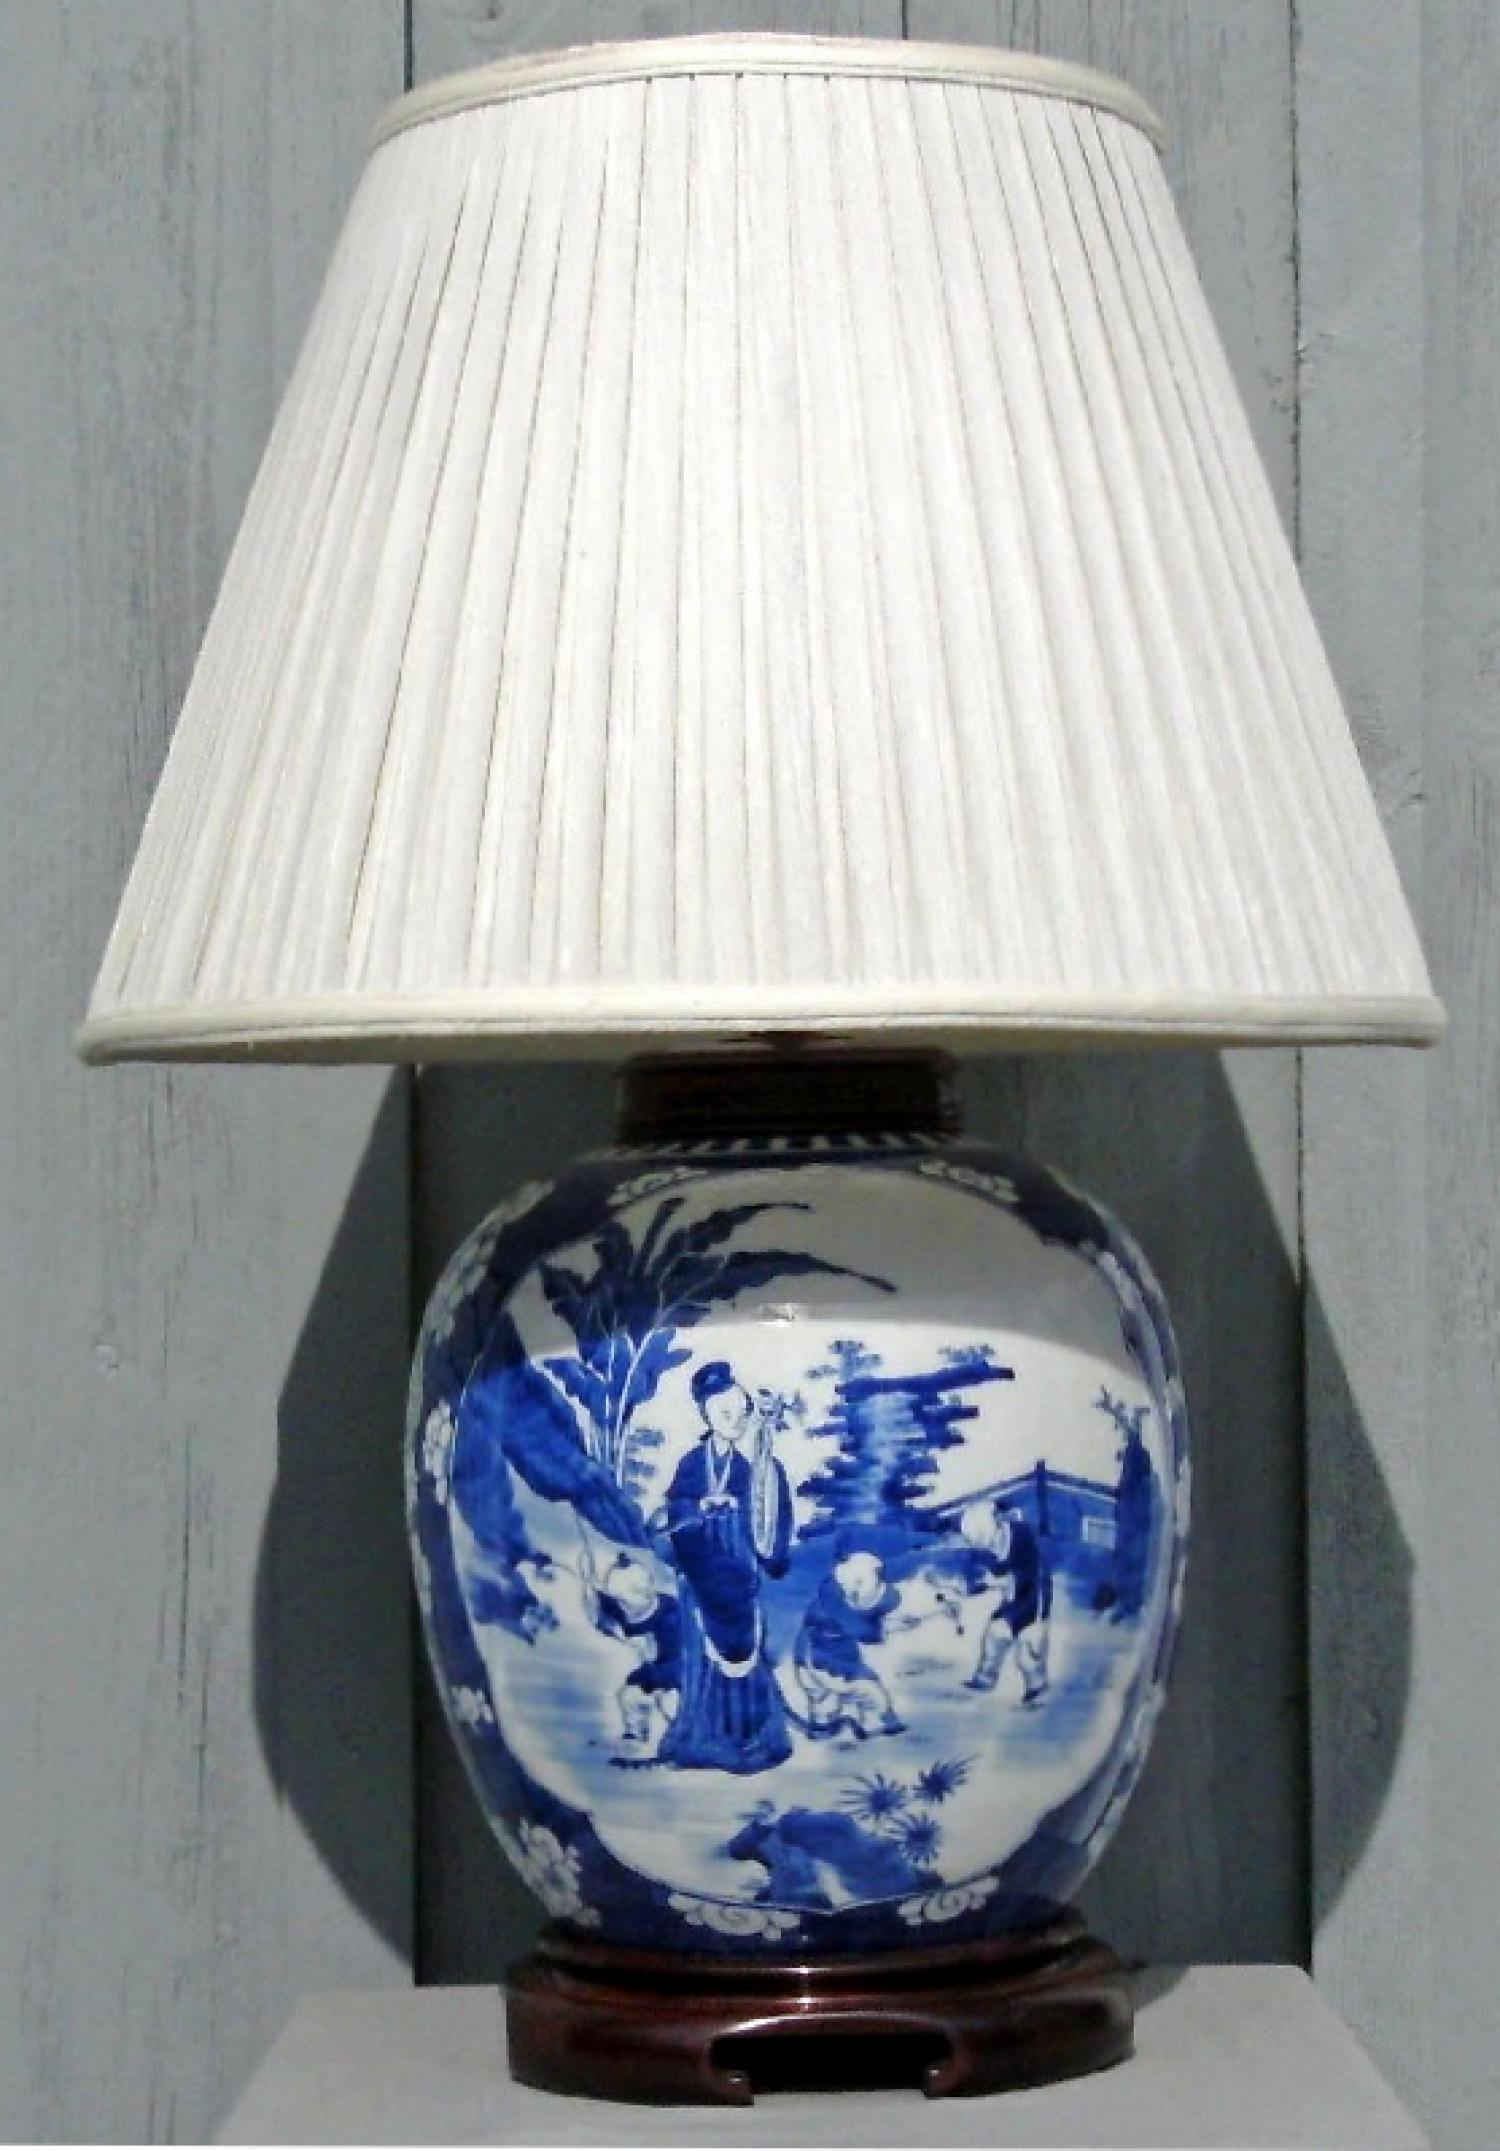 Canton blue and white ginger jar lamp with chinoiserie decoration